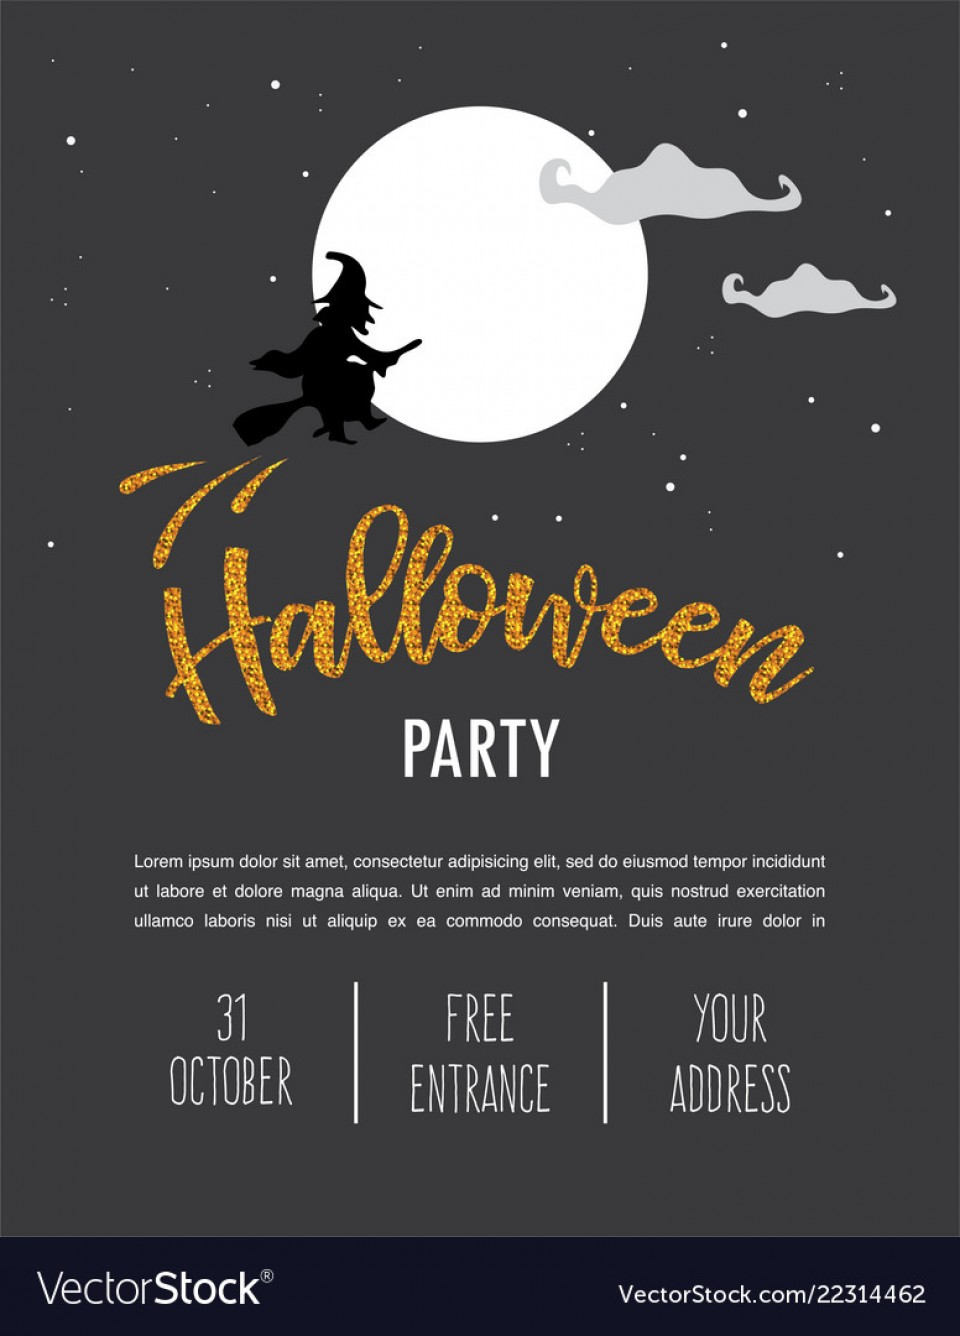 007 Exceptional Free Halloween Party Invitation Template High Definition  Printable Birthday For Word Download960